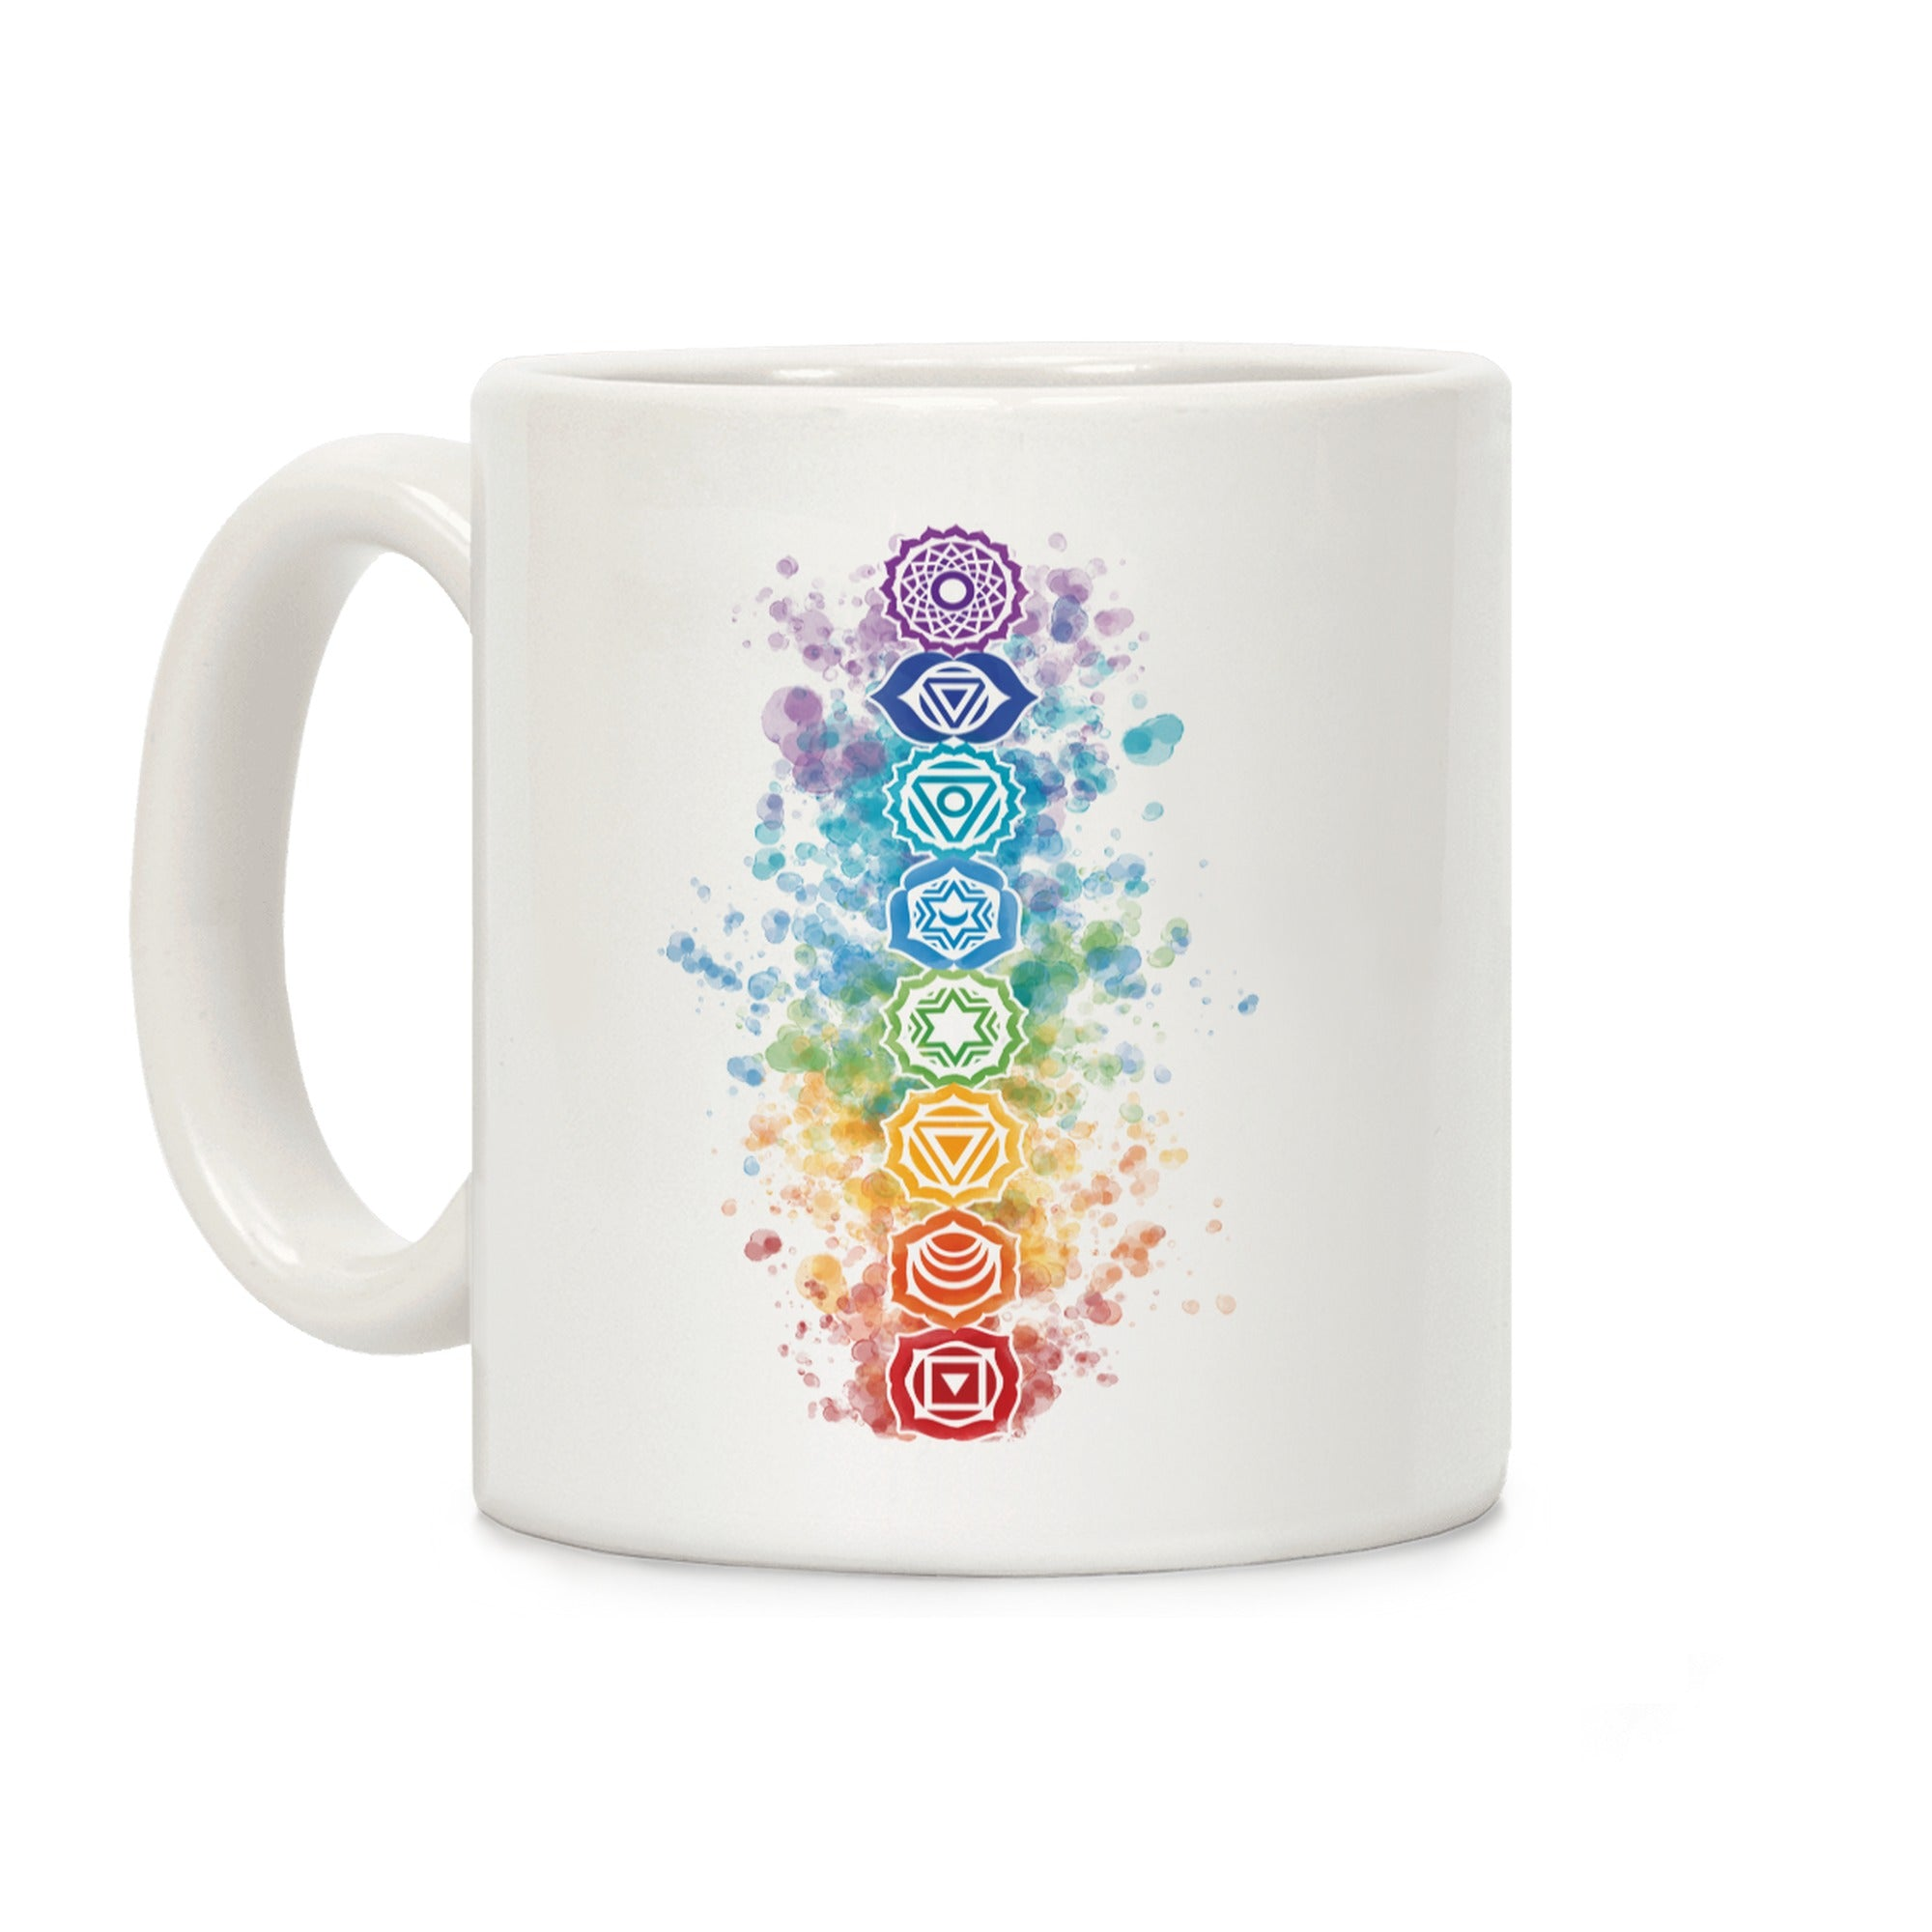 Watercolor Chakra Symbols Ceramic Coffee Mug